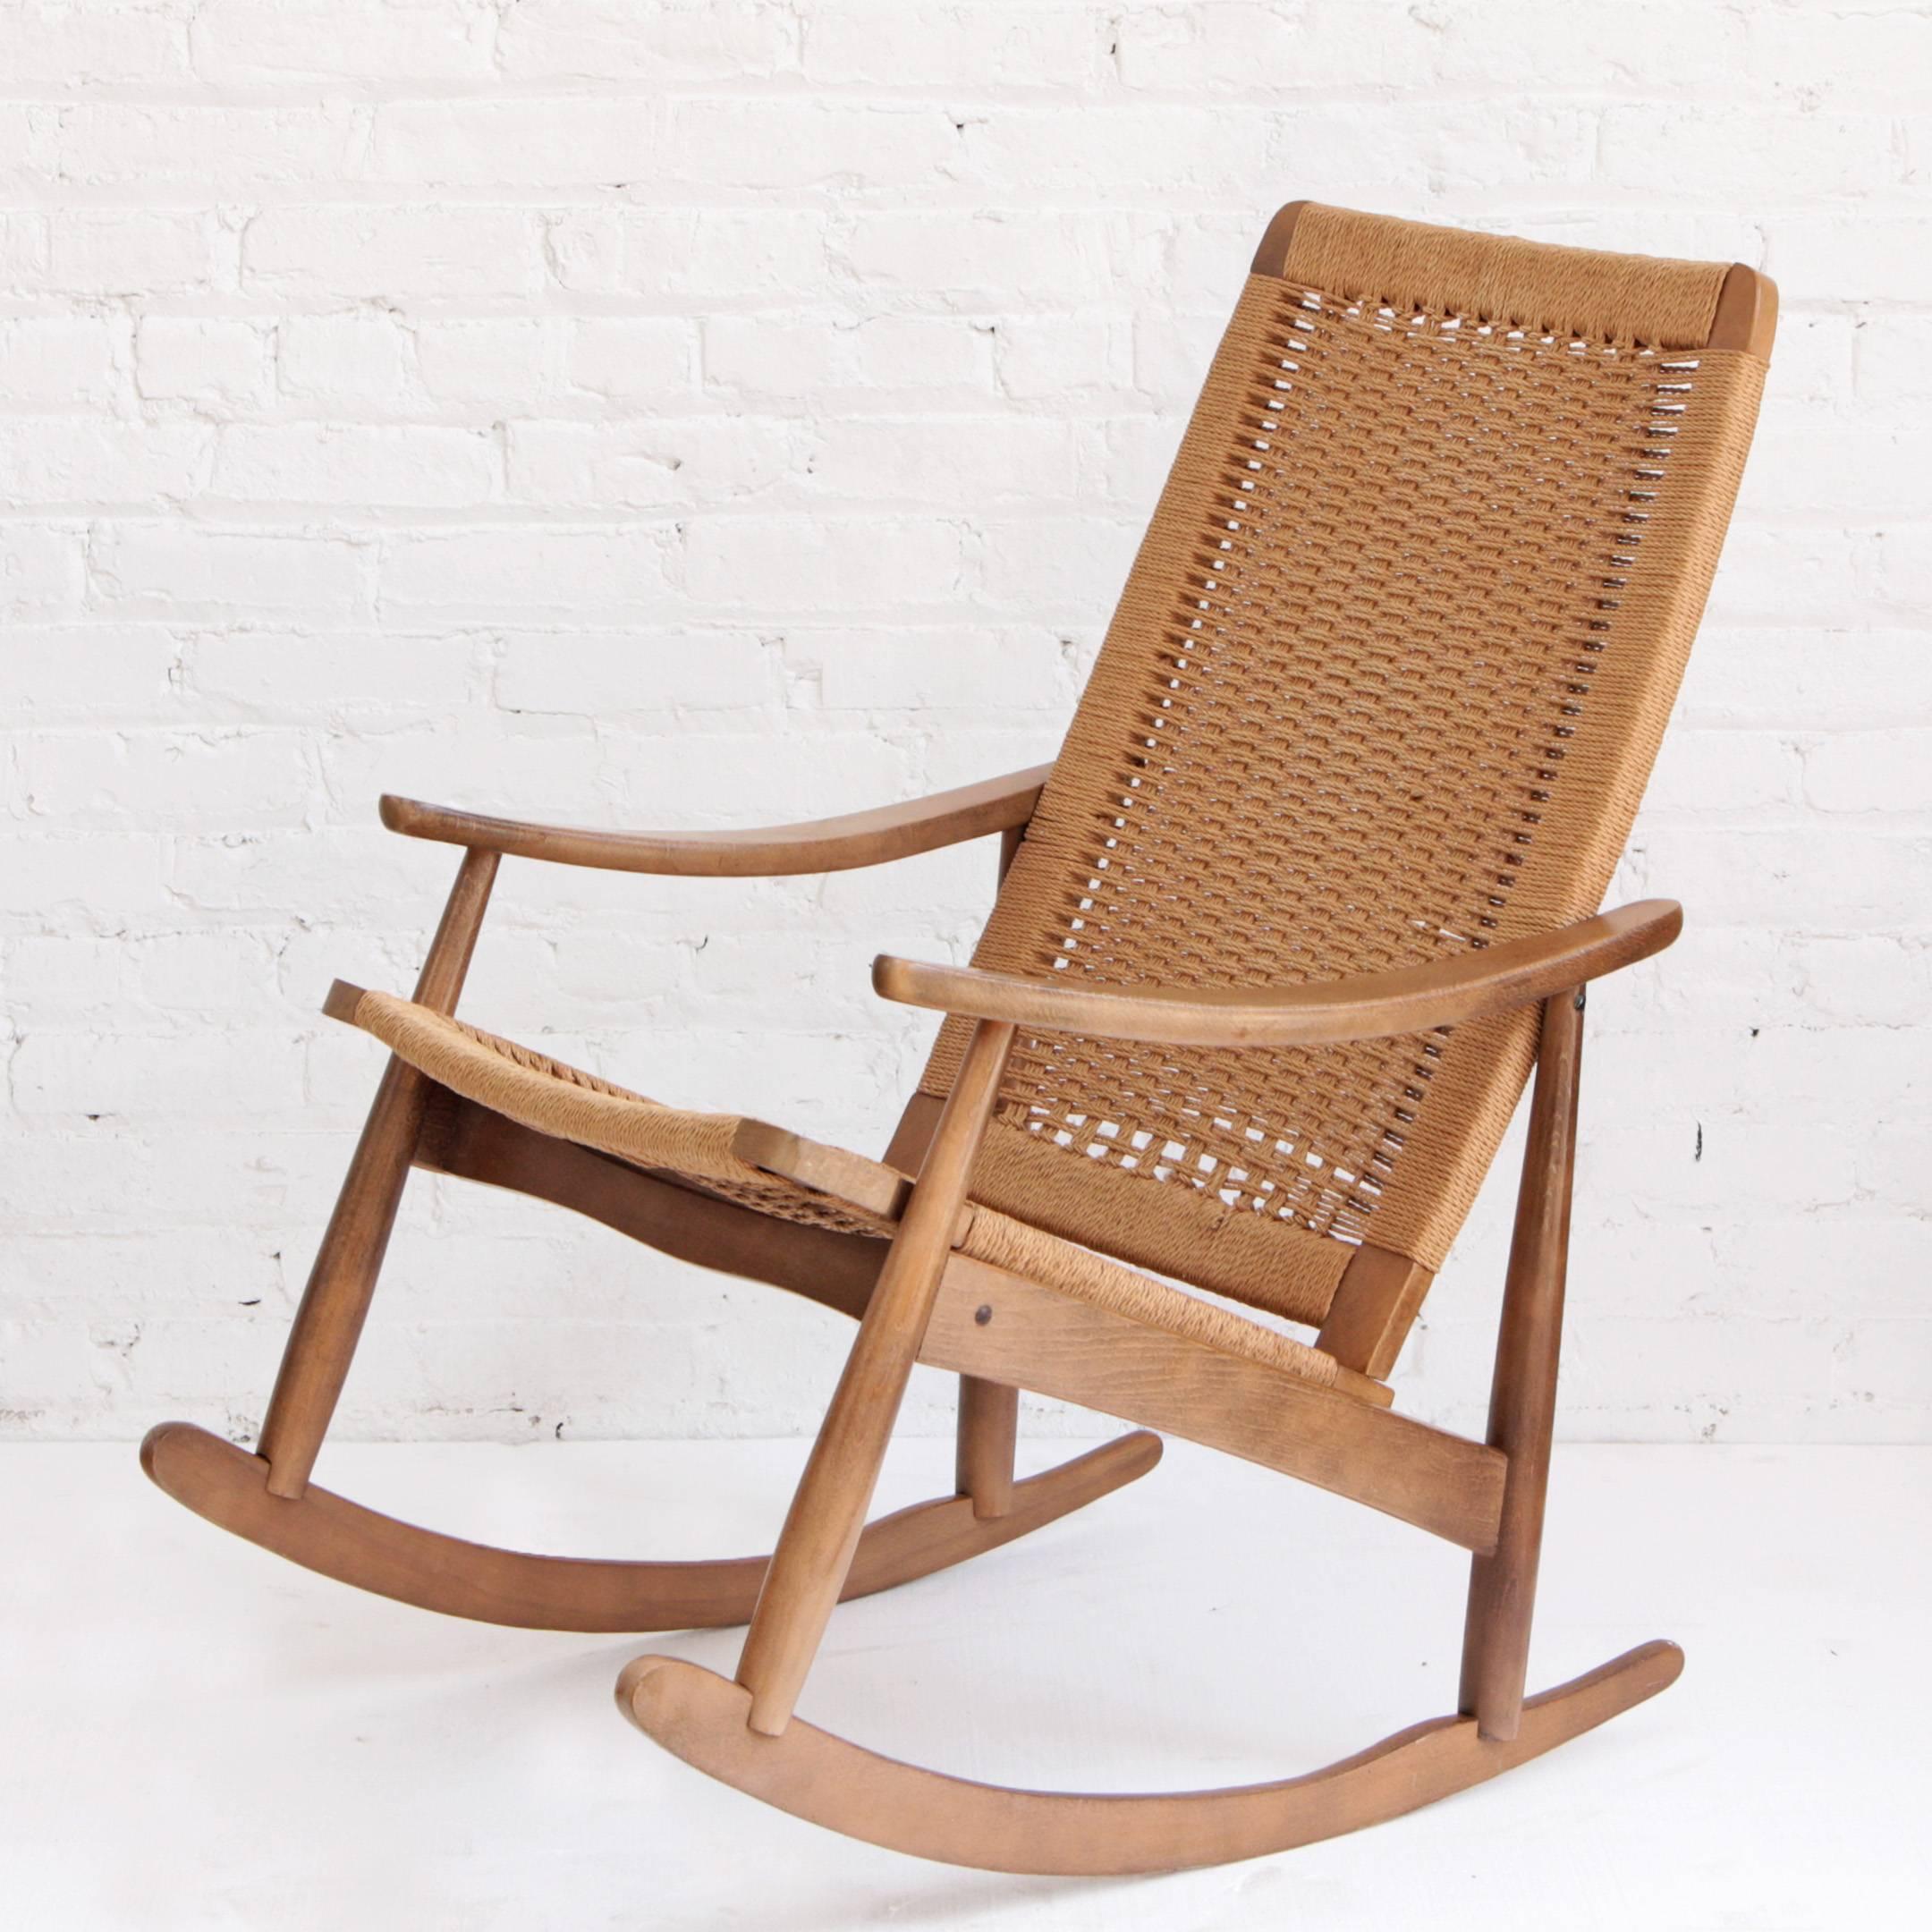 woven rocking chair mesh lawn chairs rope mid century modern and ottoman at 1stdibs